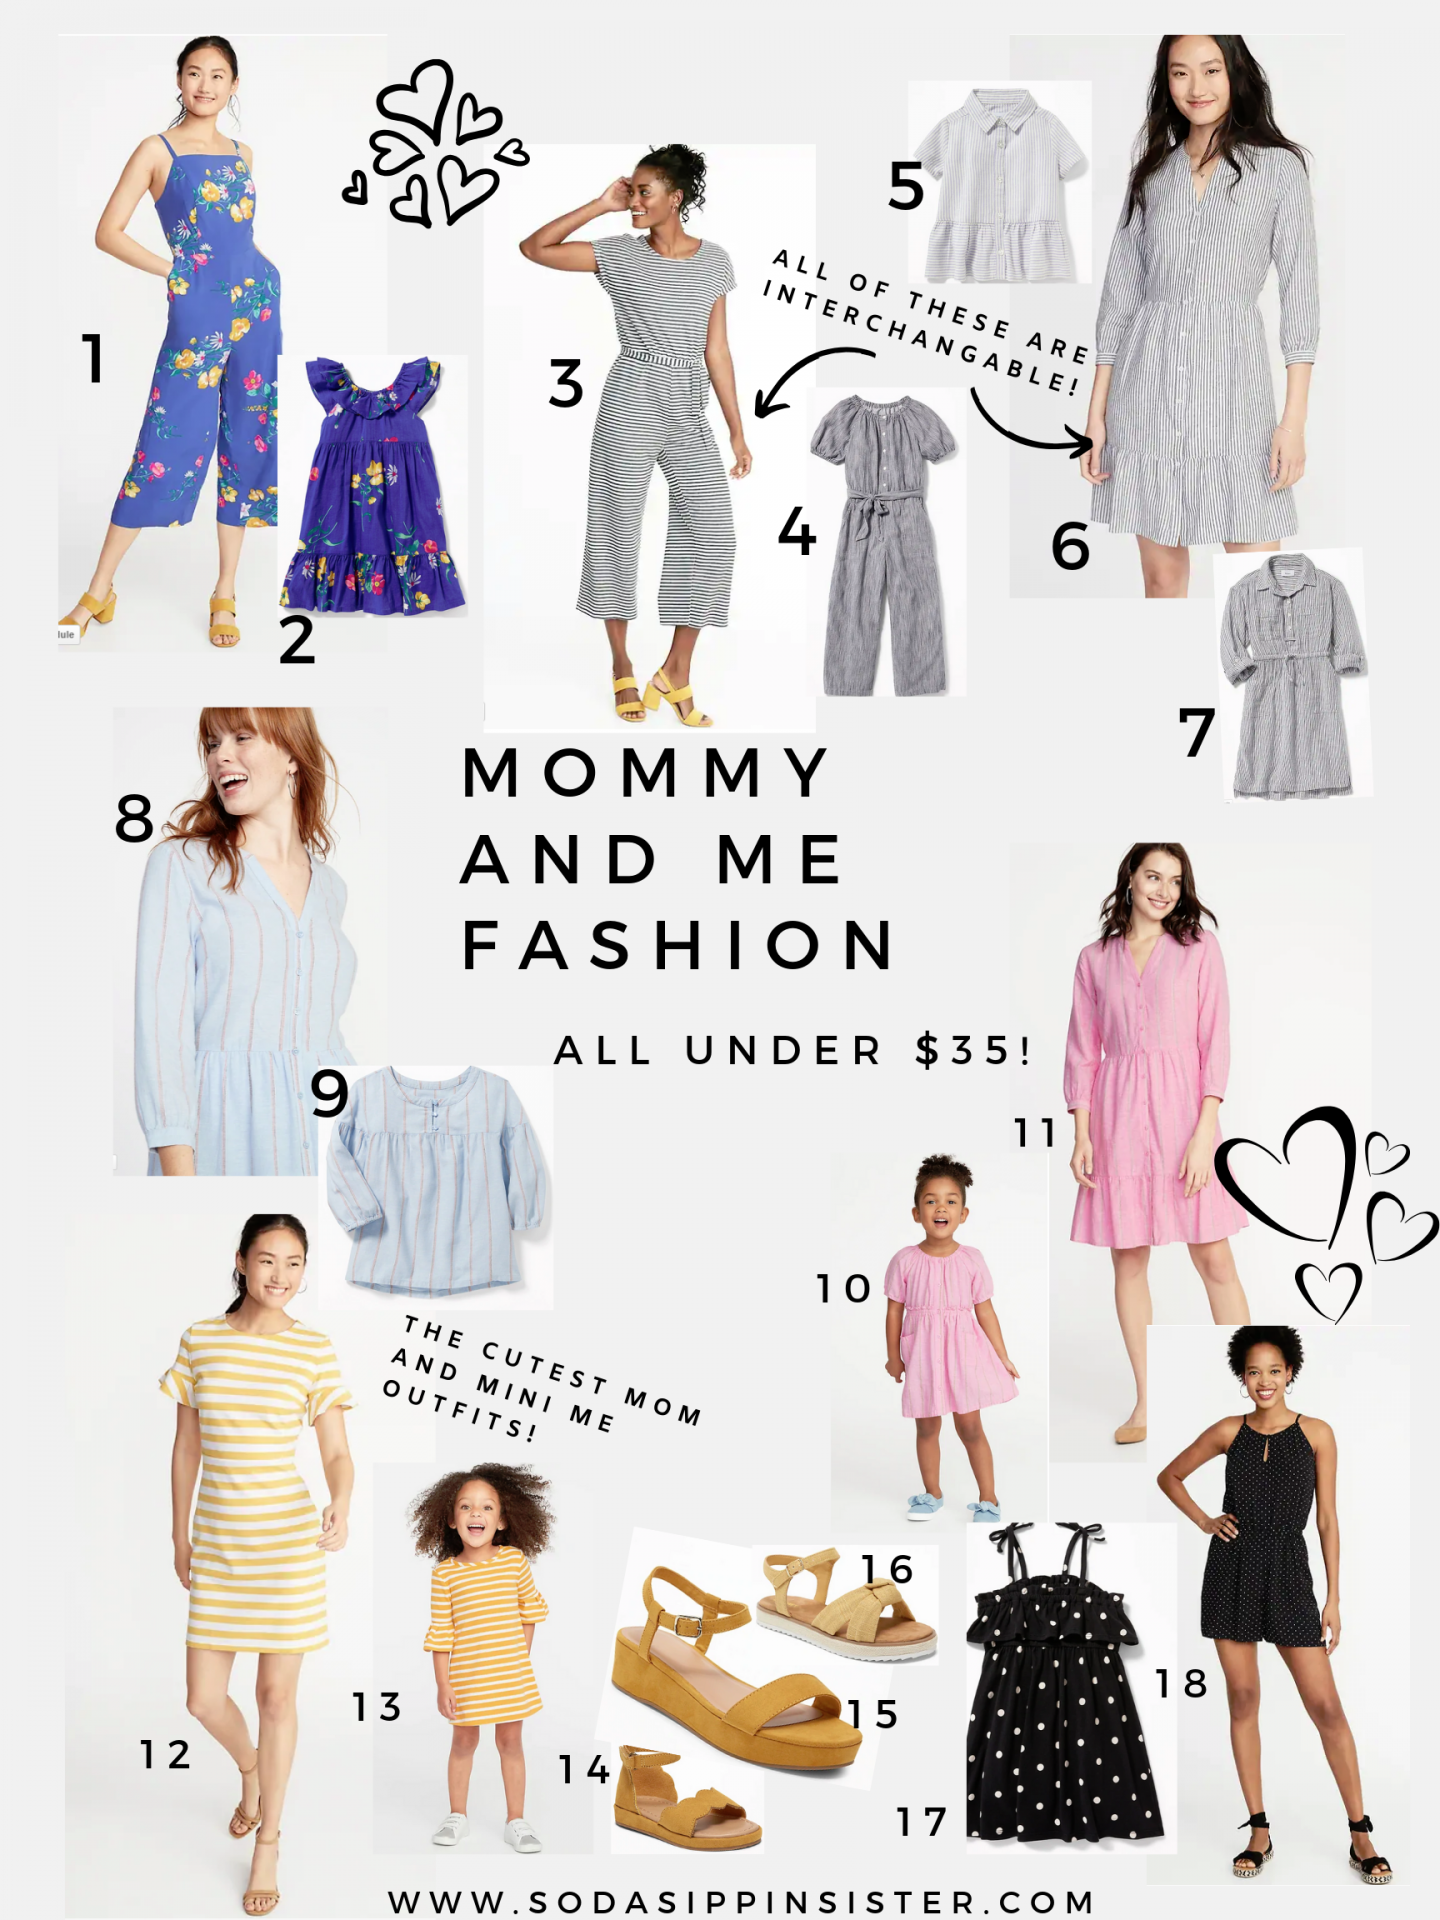 Mommy and Me Outfits For Great Prices